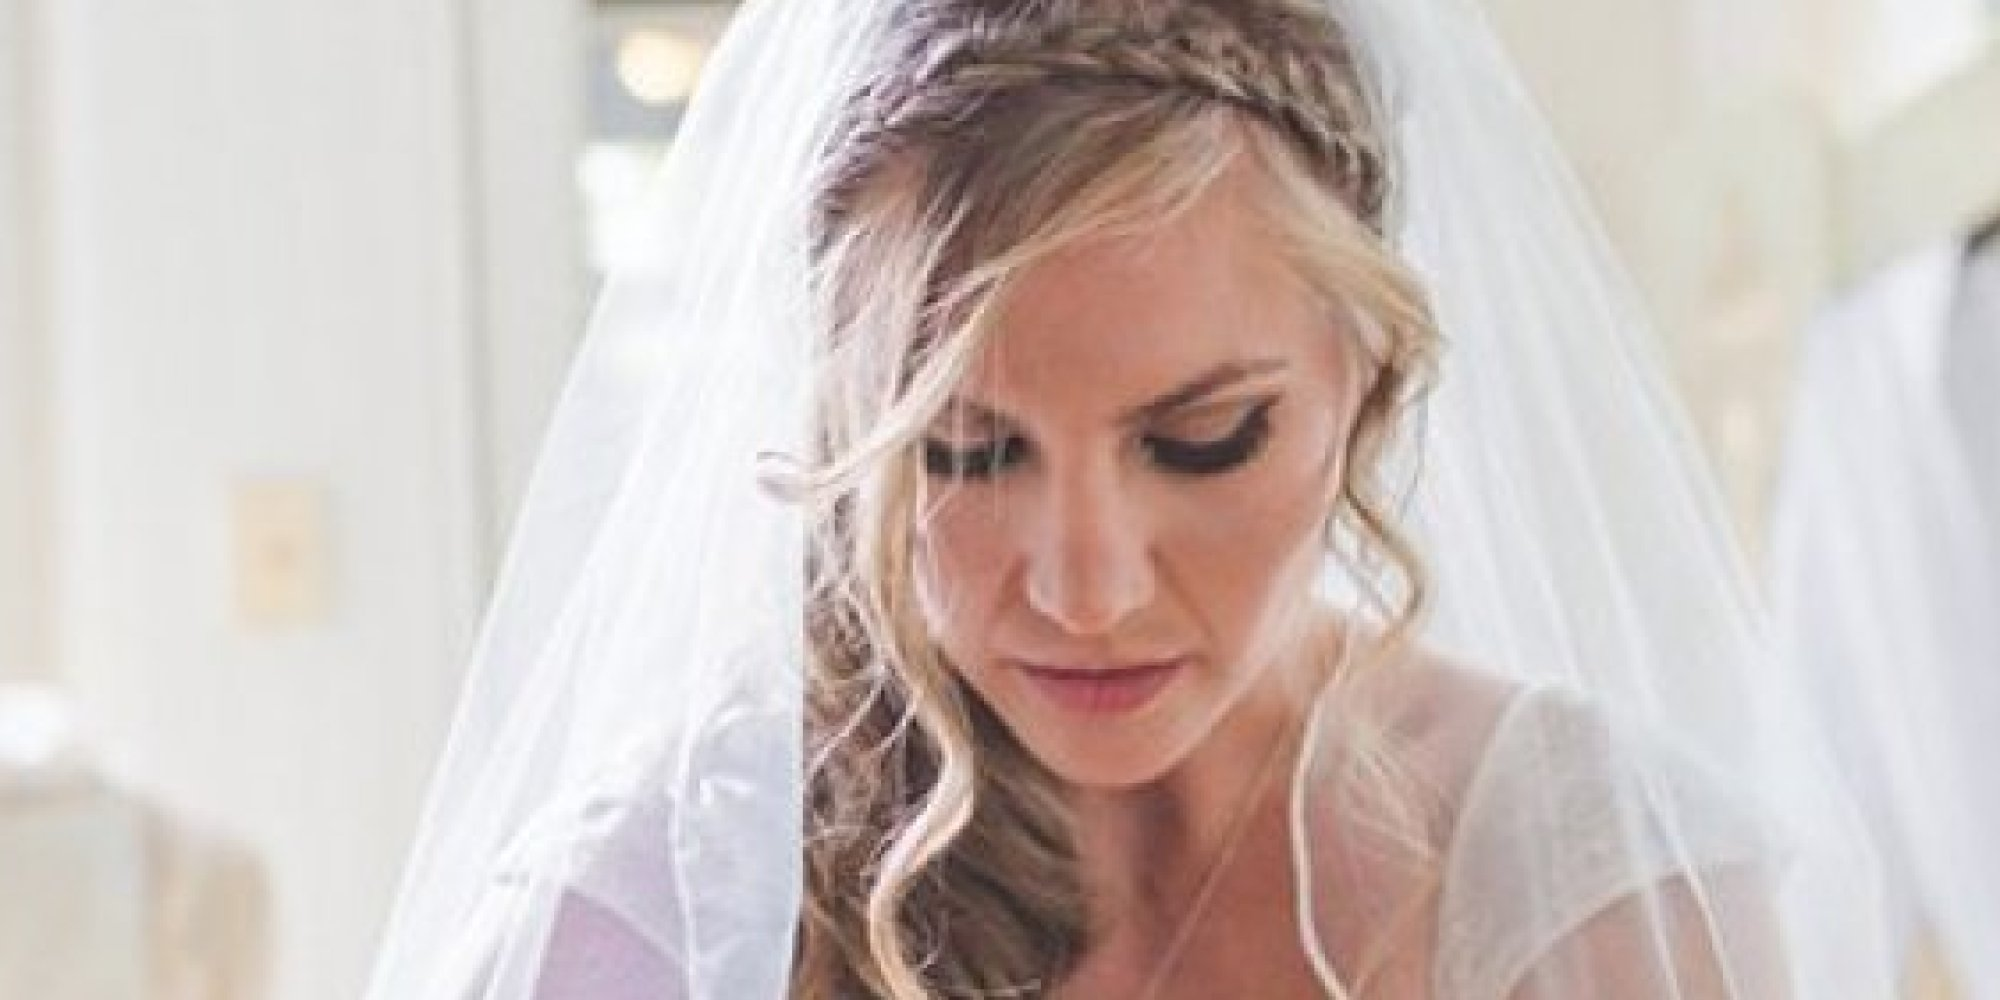 Miraculous 25 Braided Bridal Hairstyles Totally Worth Copying The Hairstyles For Men Maxibearus